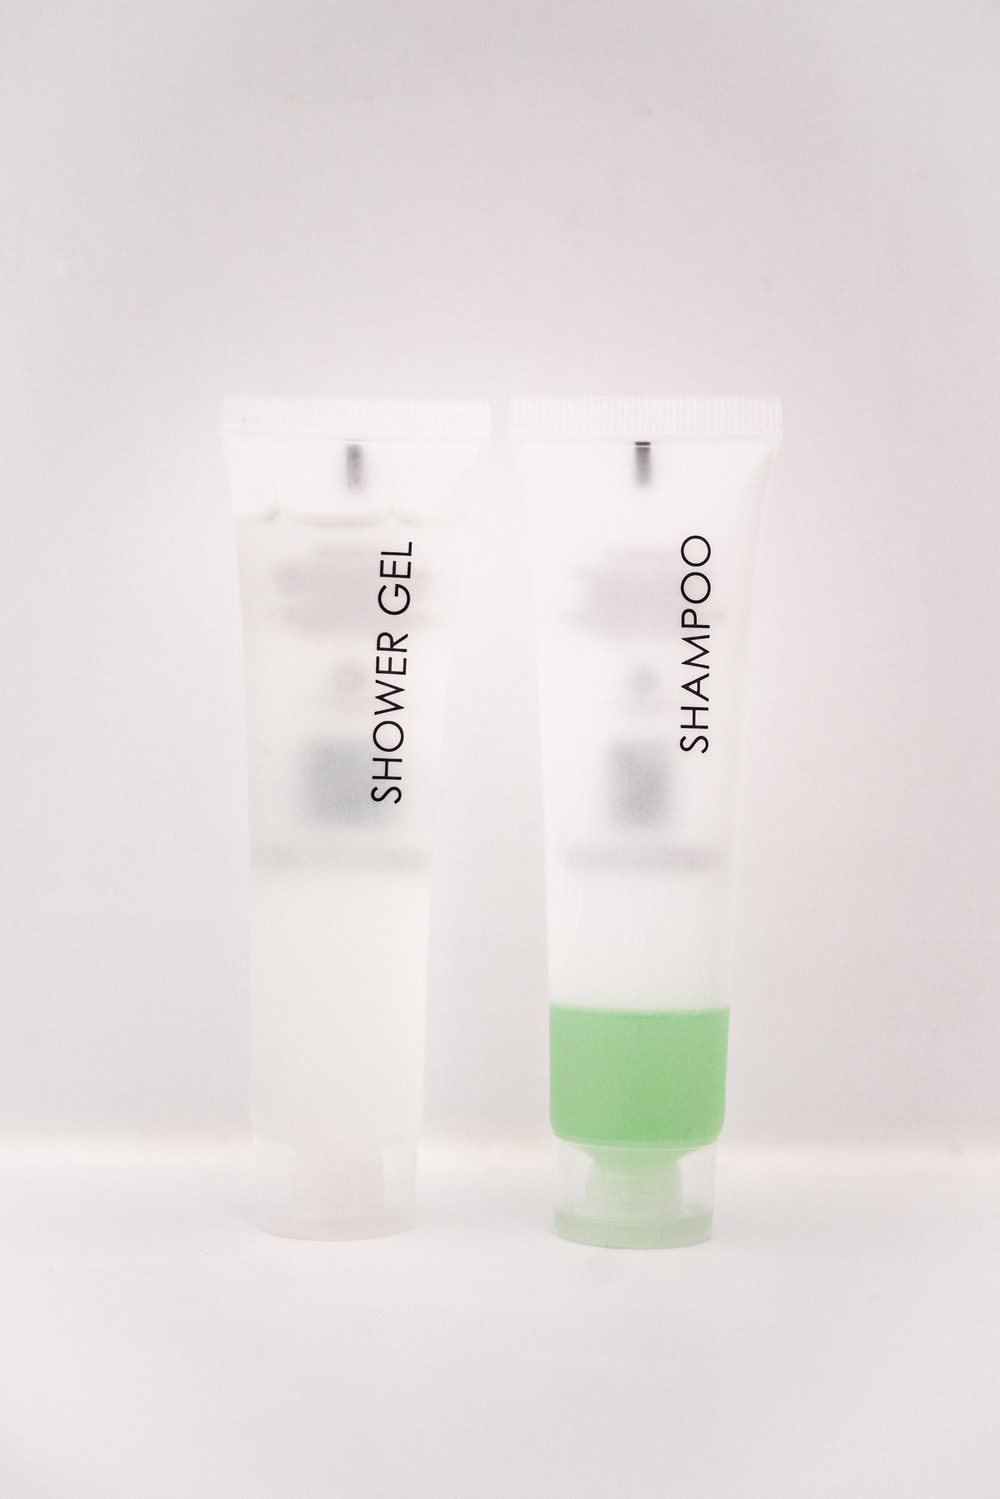 shower gel and shampoo soft-tube bottles on white surface